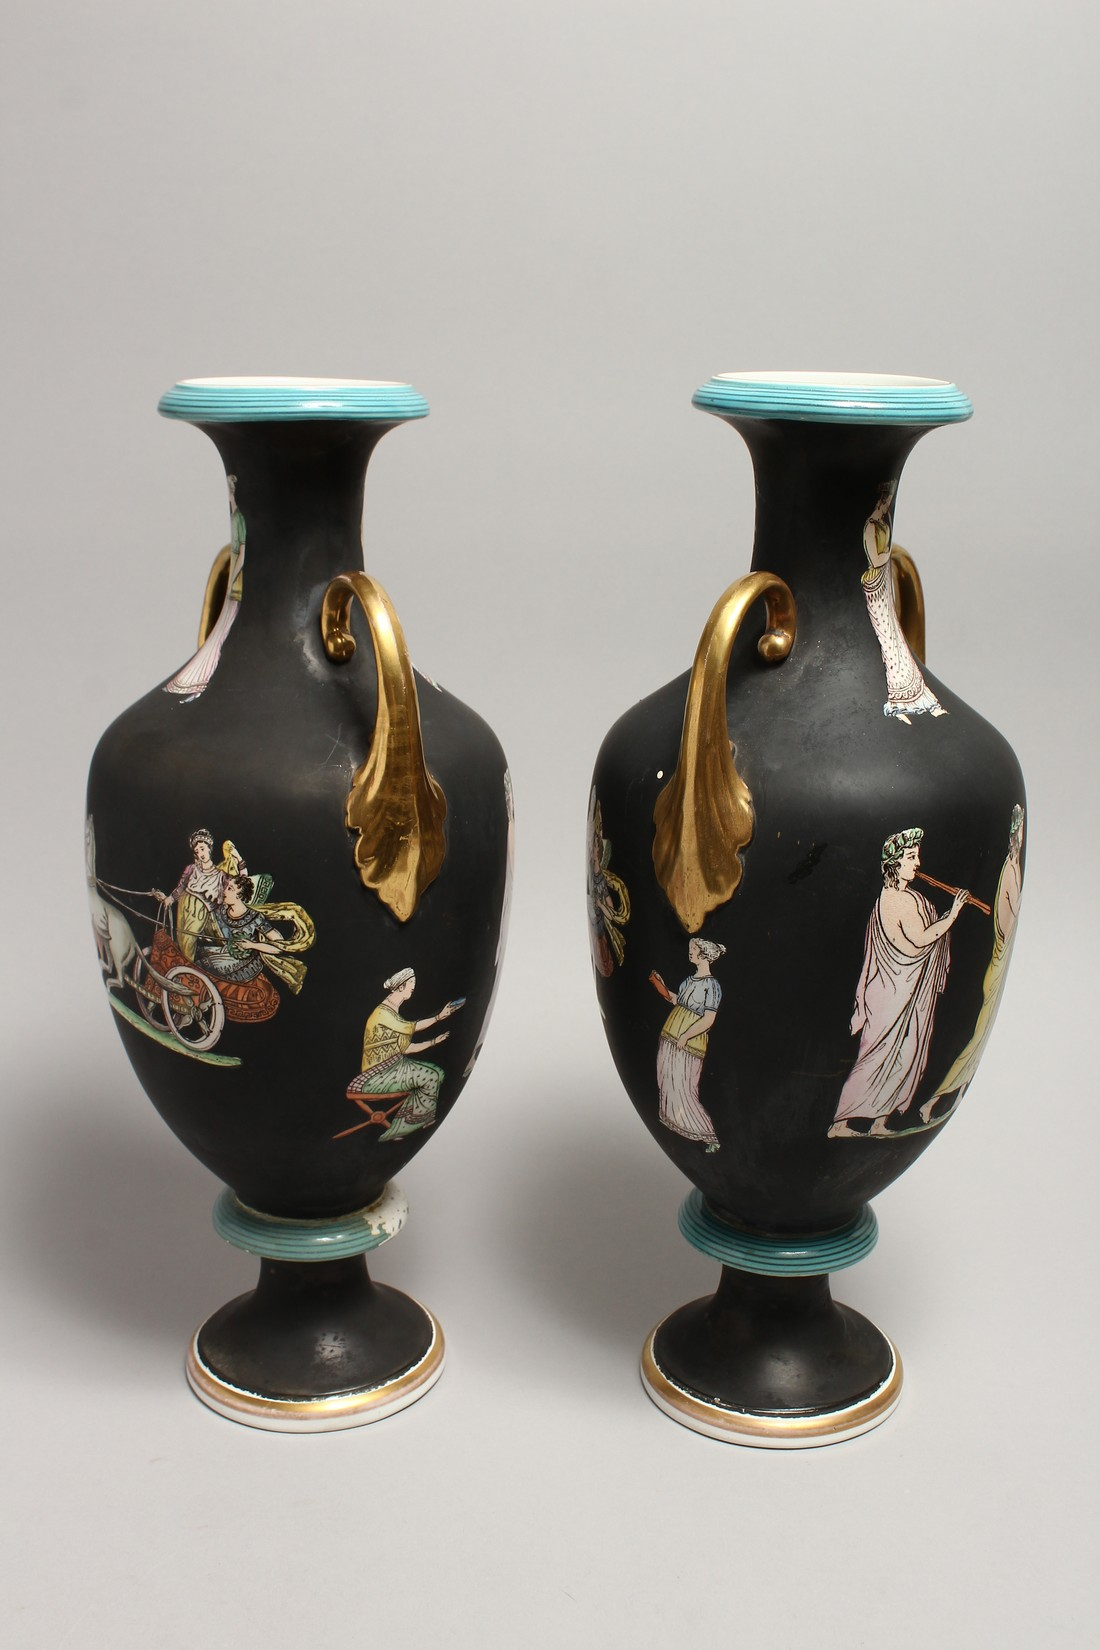 A PAIR OF CLASSICAL TWO HANDLED VASES with Greek figures 16ins high. - Image 3 of 7